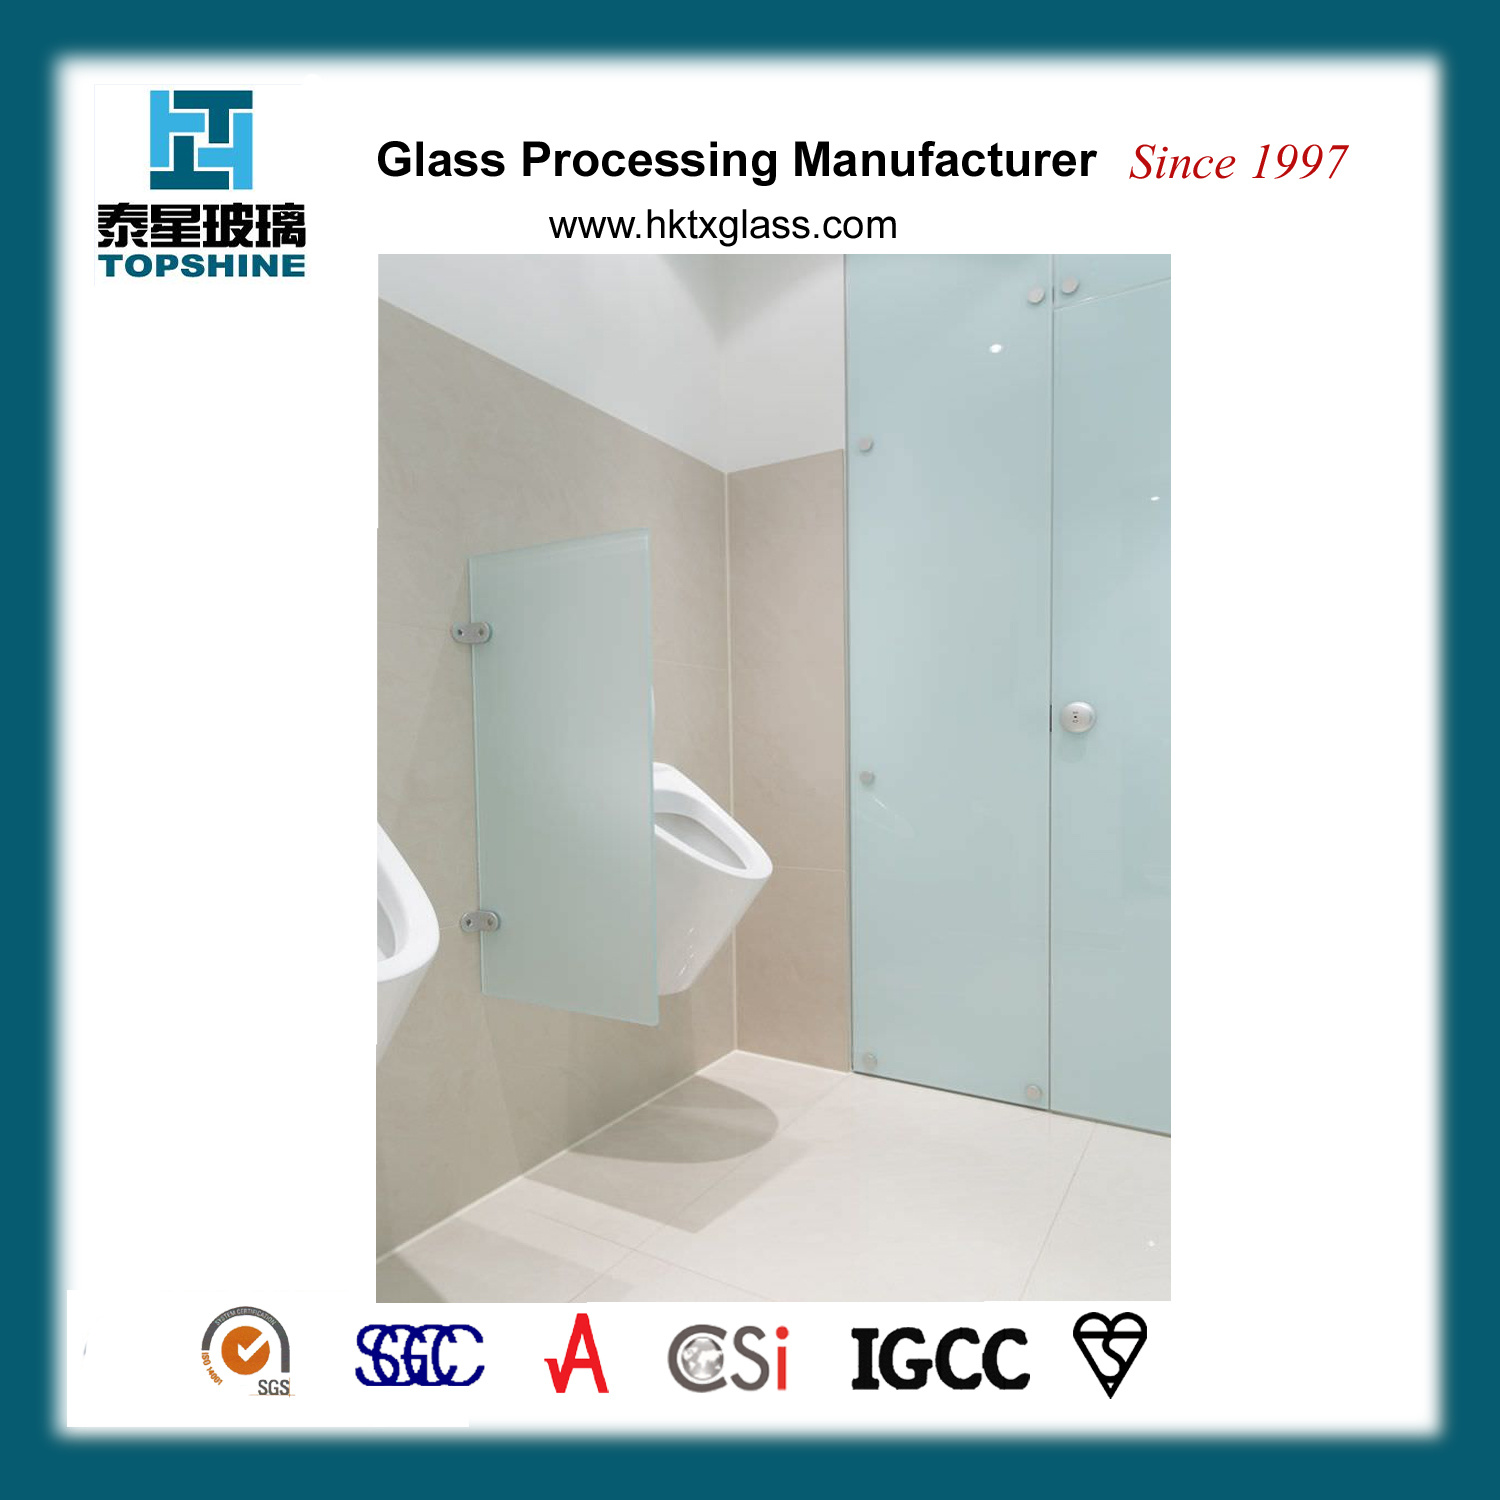 China New Design Glass Partition Wall For Toilet Photos Pictures - Glass partition wall for bathroom